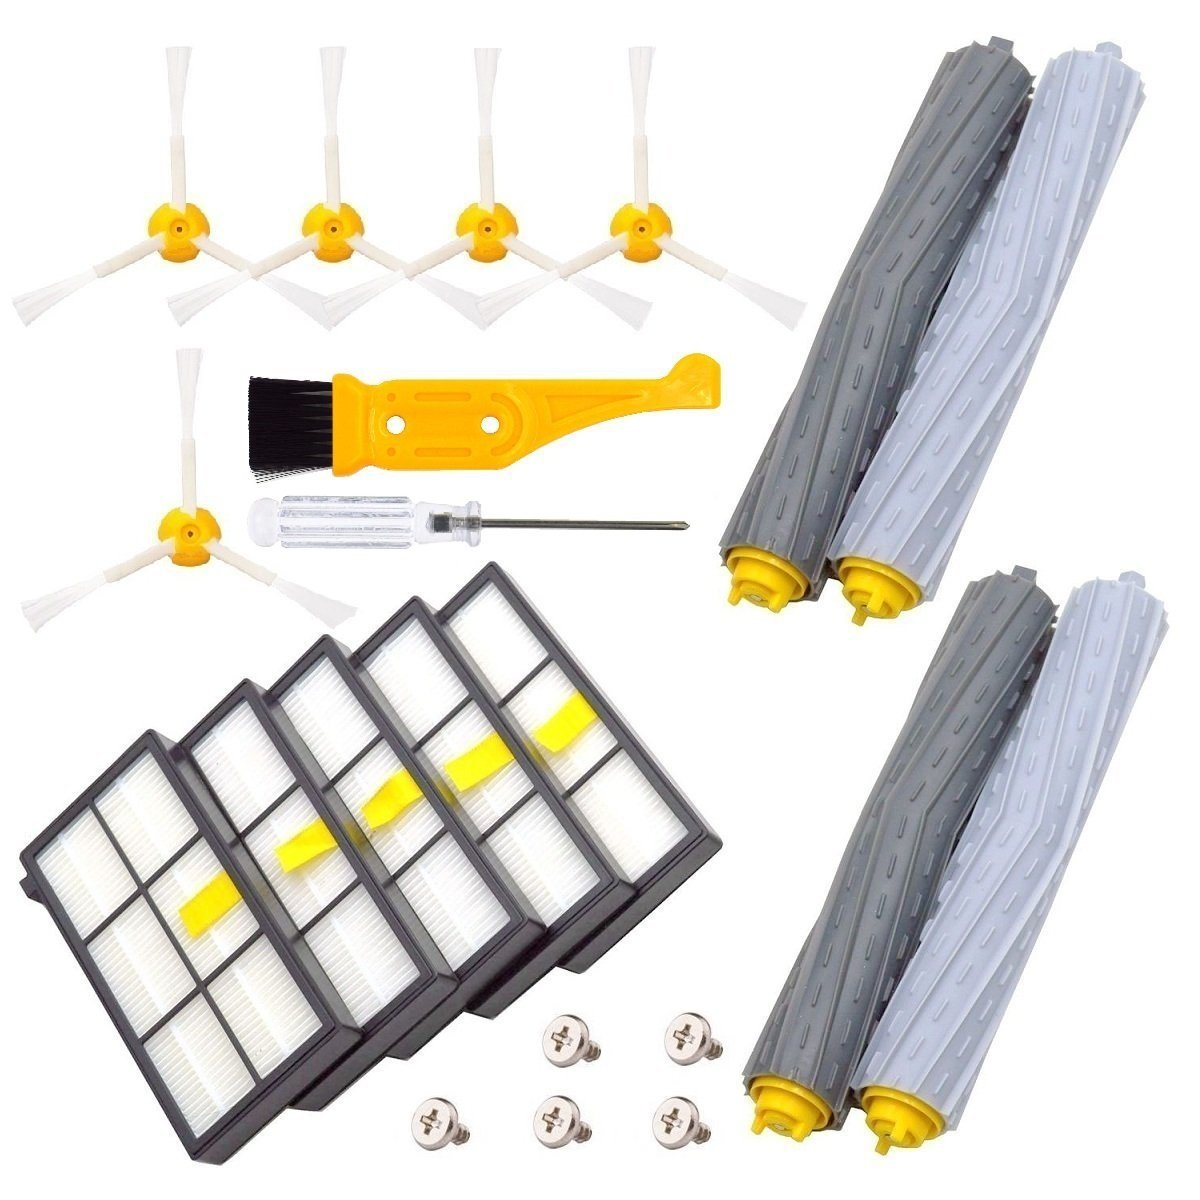 DerBlue Side Brushes and Filters Replacement Accessories For iRobot Roomba 800 900 Series 805 860 870 871 880 890 960 980 Robotic Vacuum Parts-Include: 10 filters, 6 Armed-3 Side Brushes,6 Screws